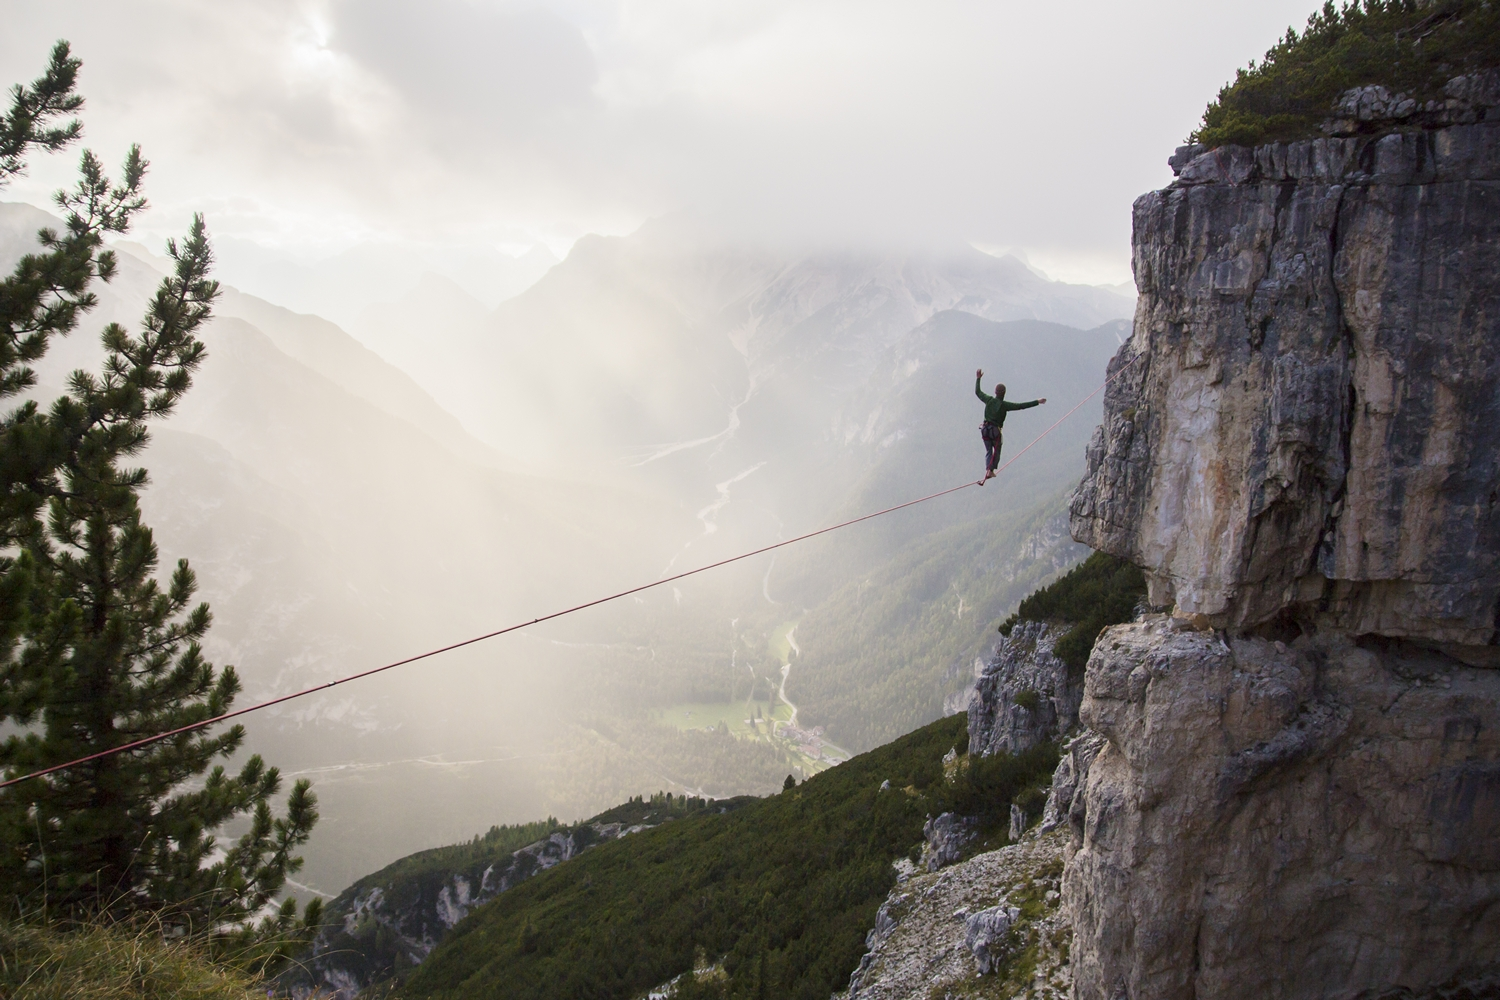 orosz_adam_outdoorinhales_highline_monte_piana_2014_09